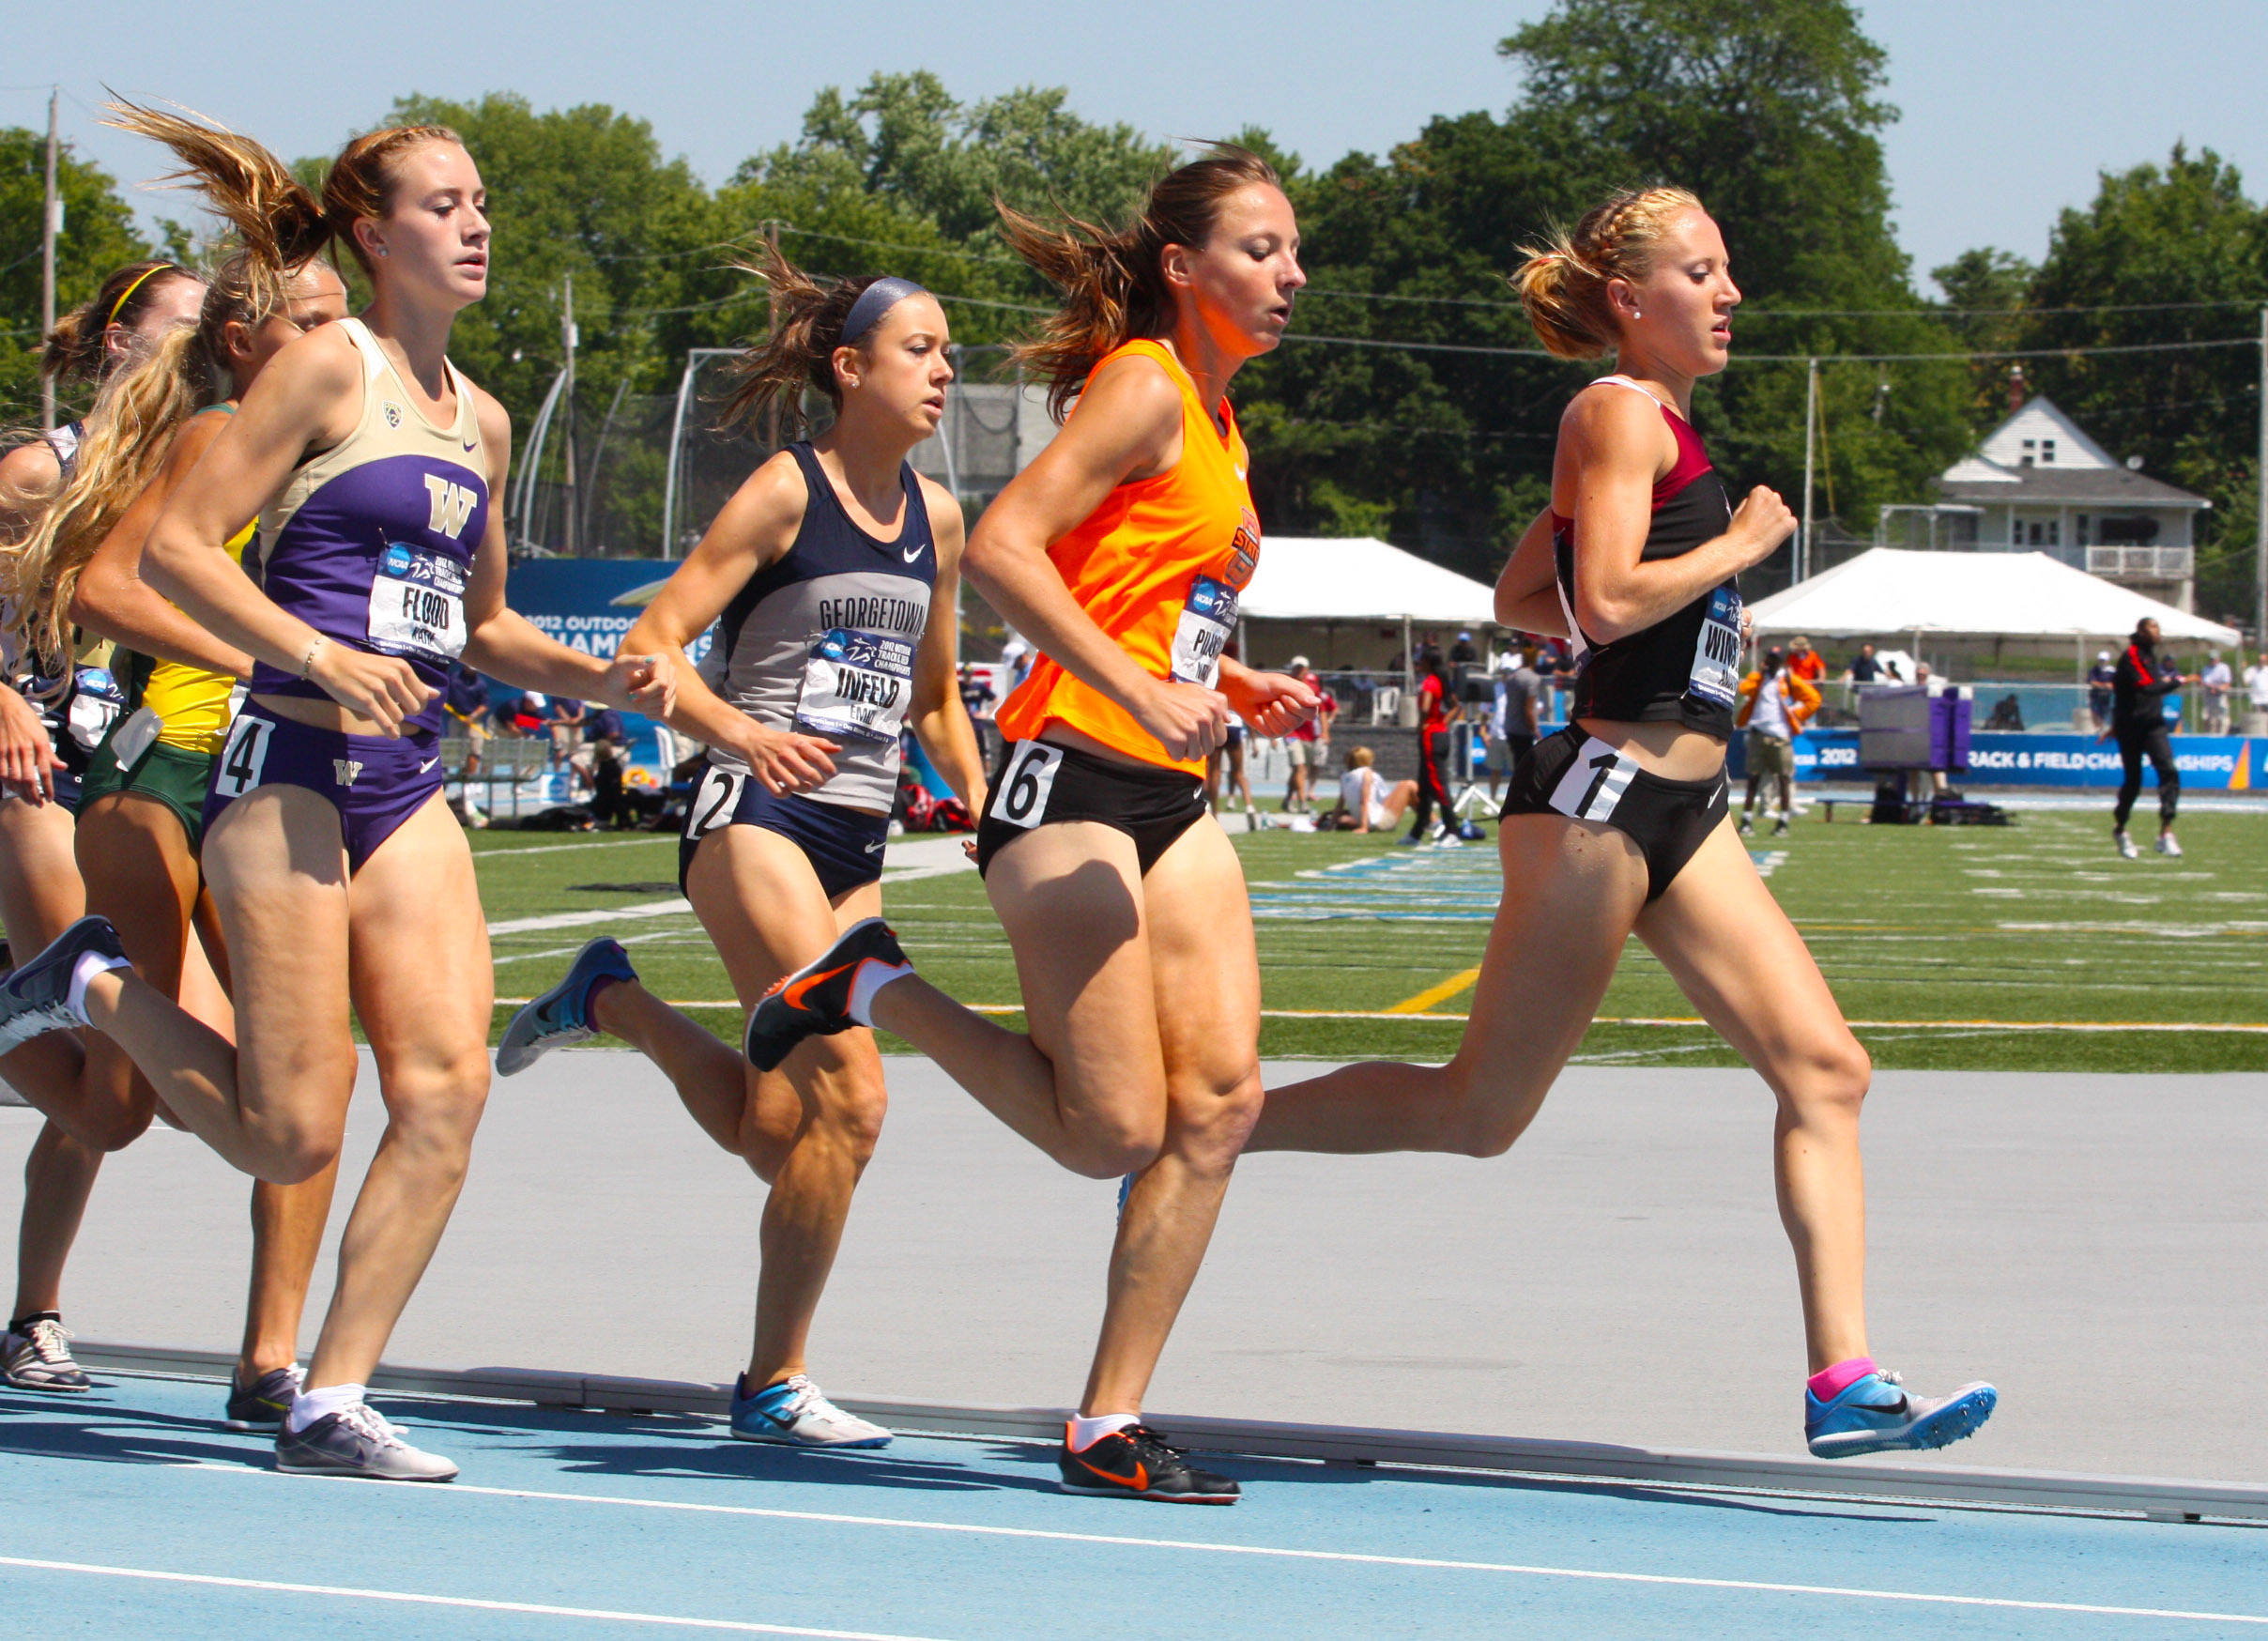 Amanda Winslow led most of the way in the 1500 meter final